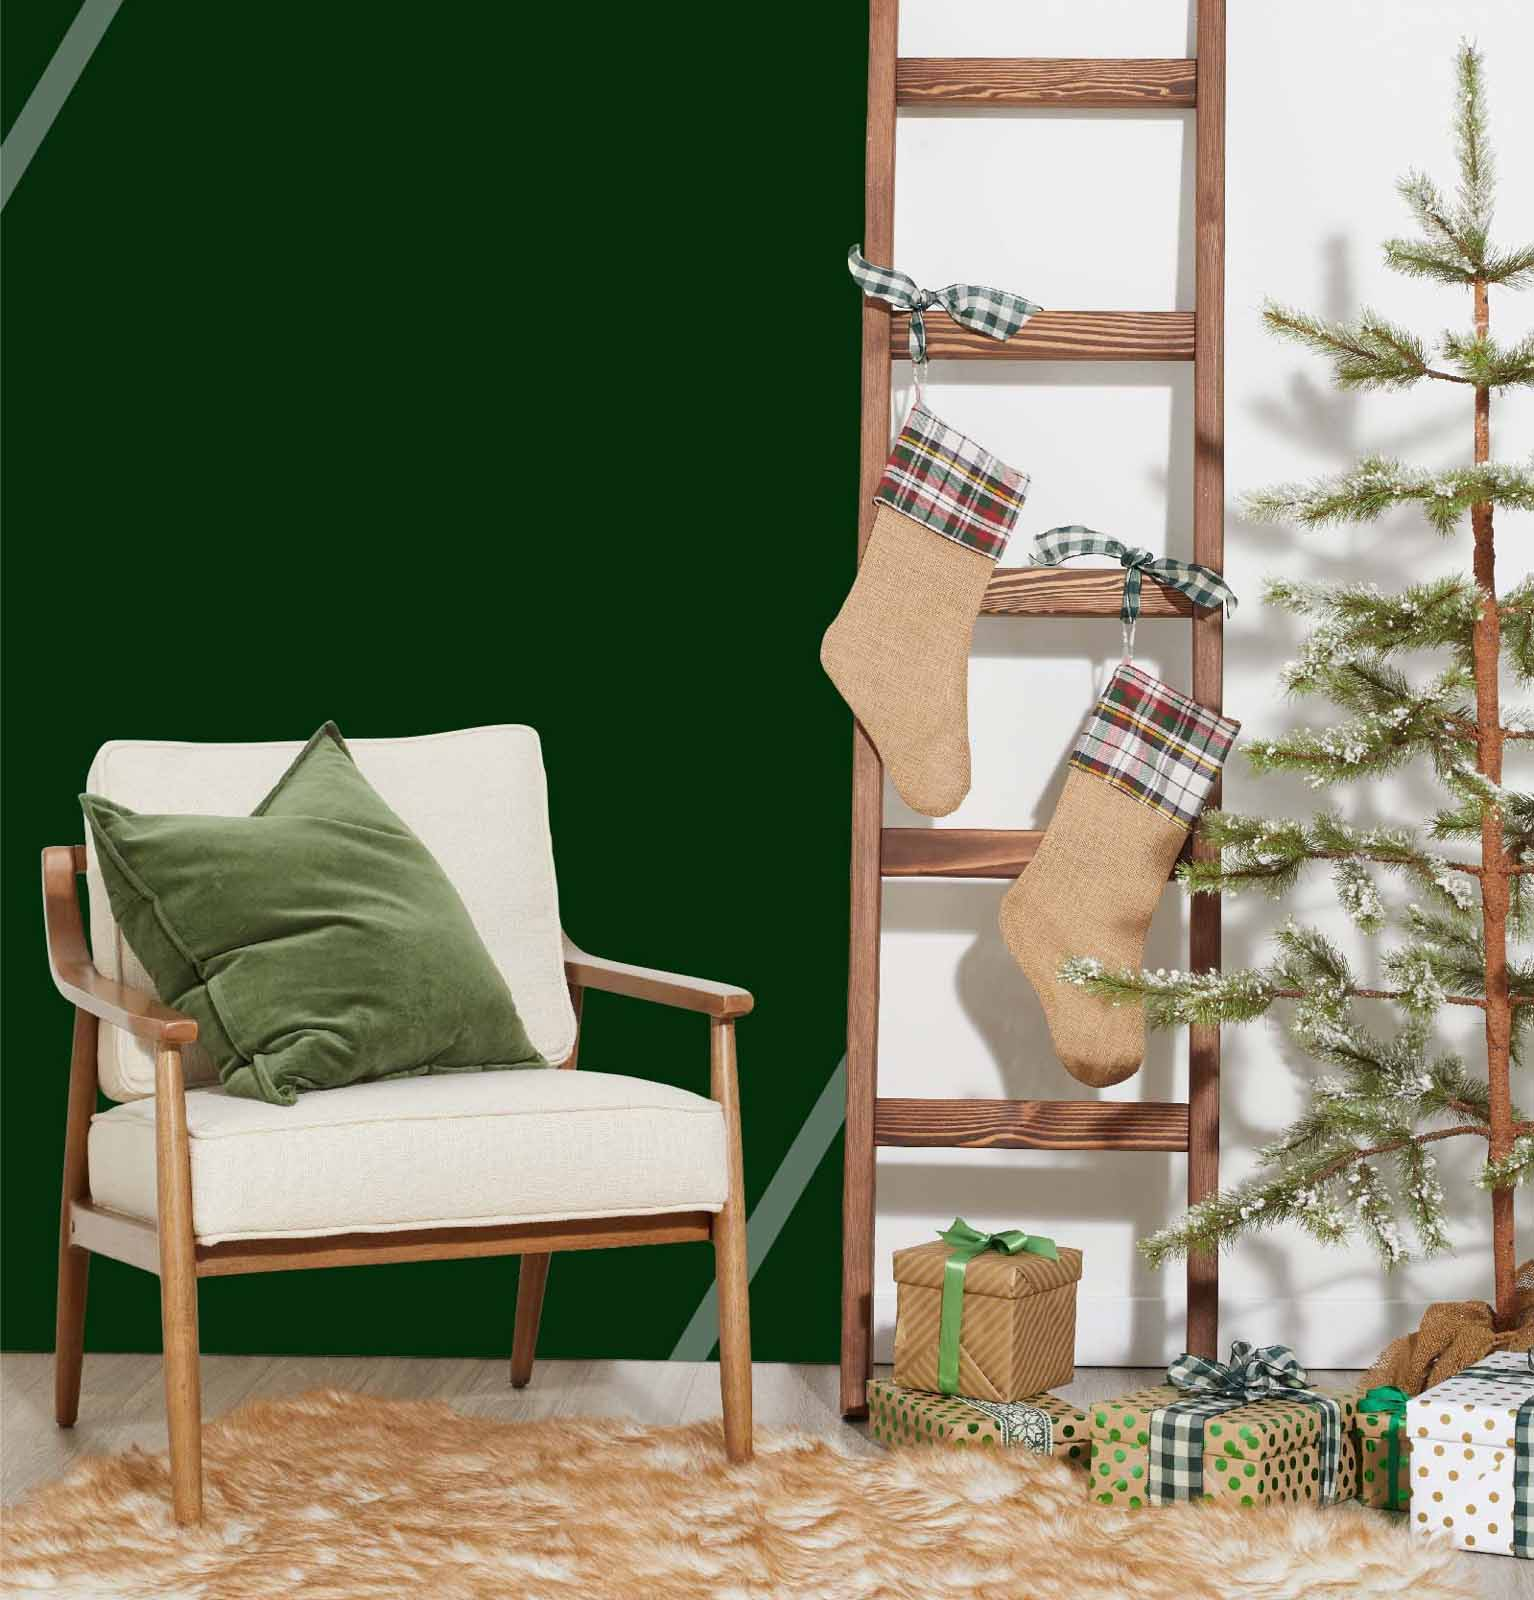 /Holiday/Christmas-Store/On-sale,/sale,/479/dept.html